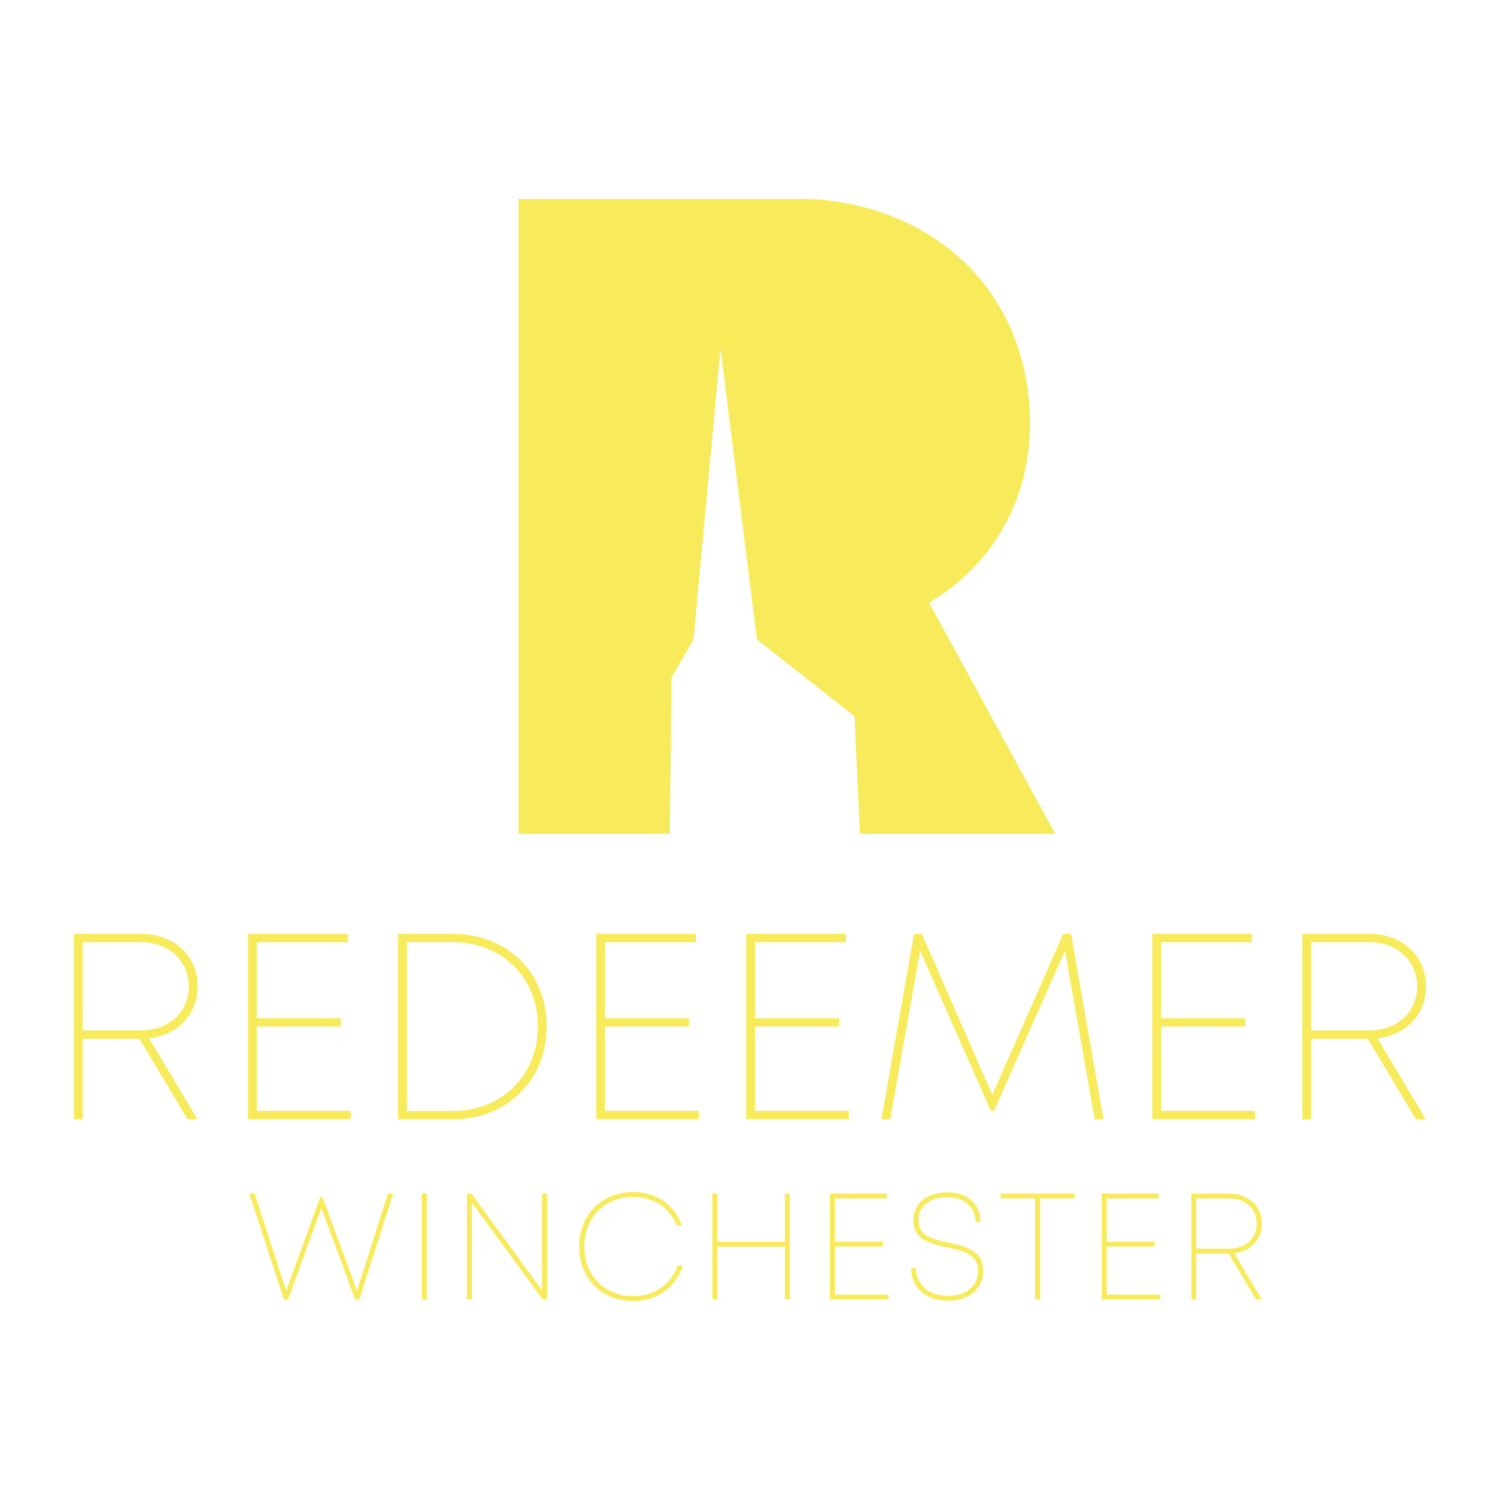 Redeemer Church Winchester